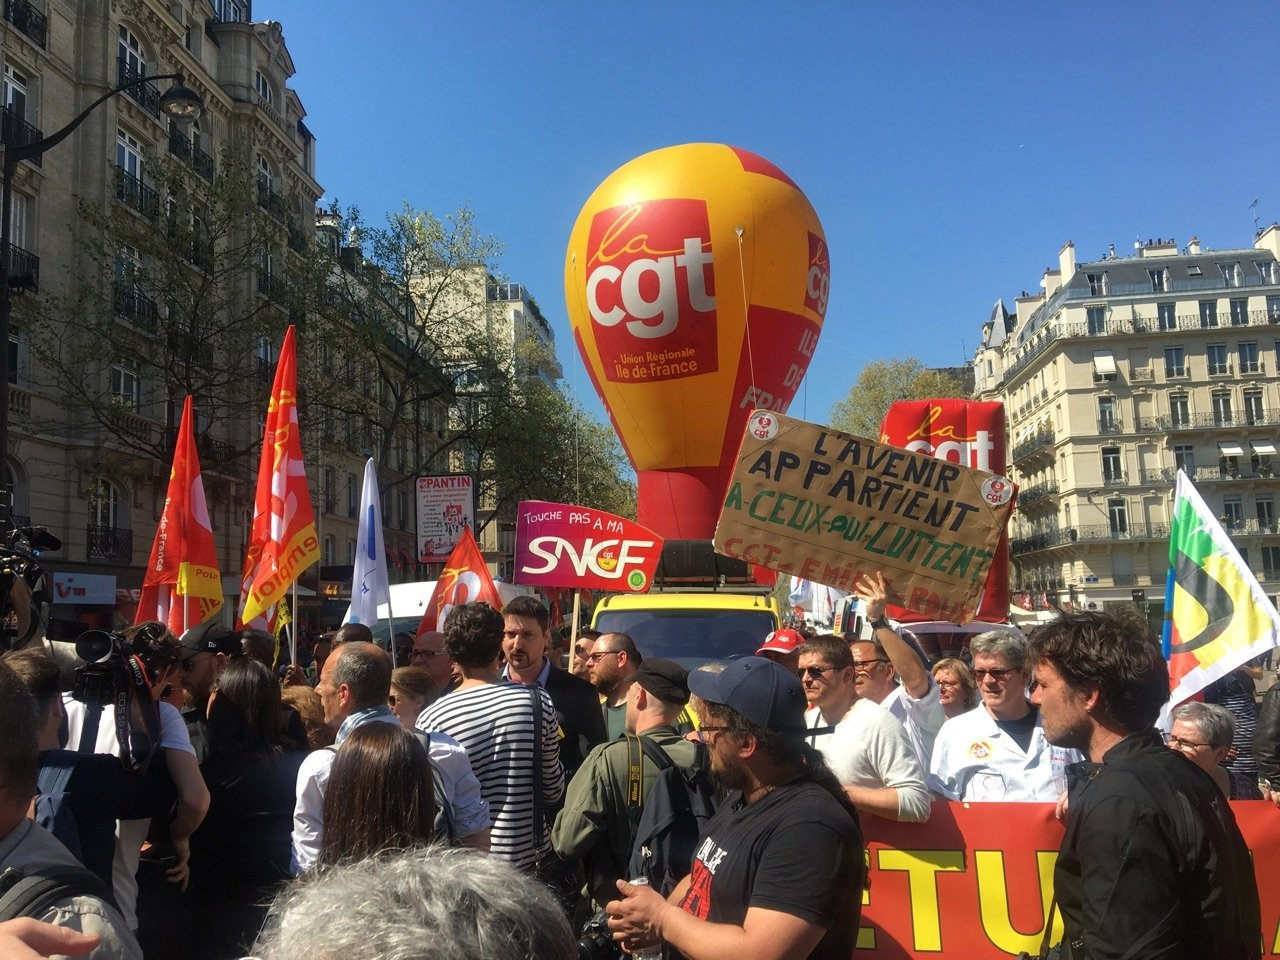 May Day labour union march in Paris, France, May 1, 2018